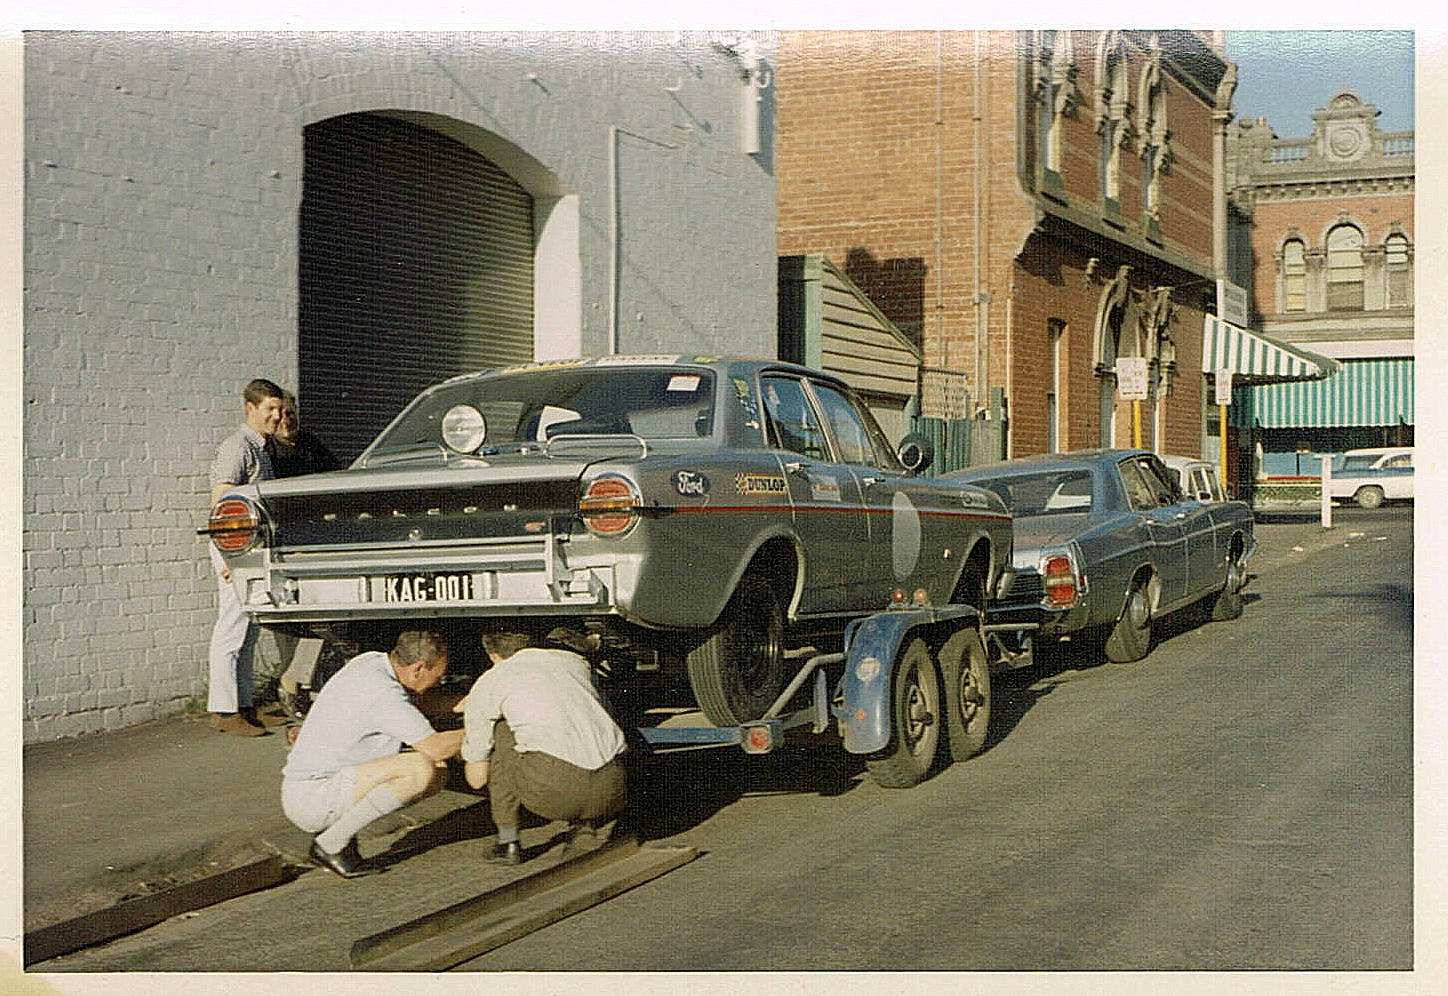 KAG001 on a trailer outside Harry Firth's workshop in Hawthorn before the 1968 Marathon. Pic from Matt Philip.